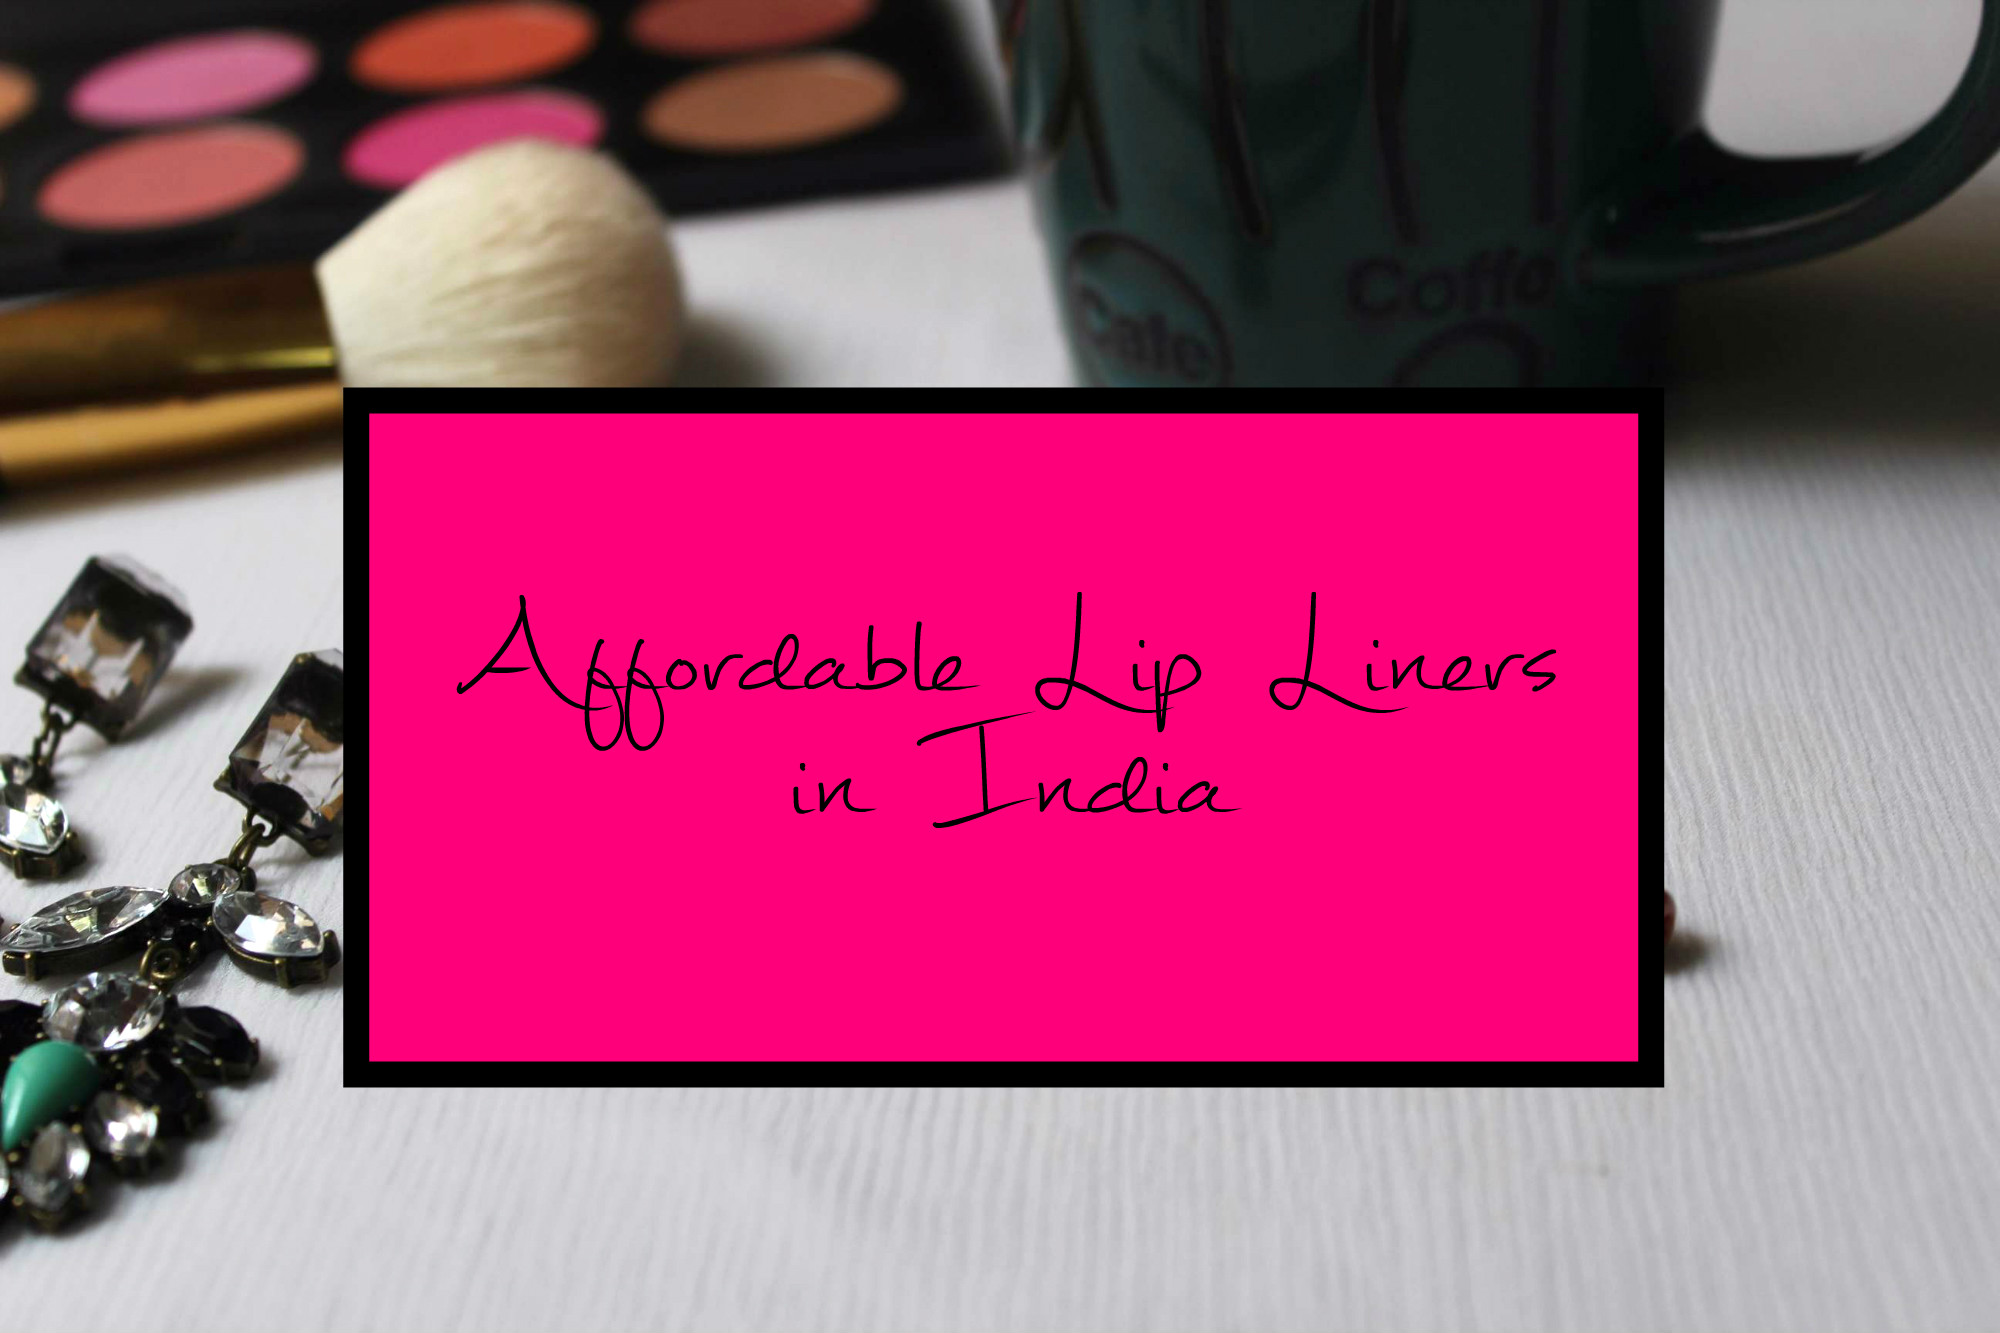 Affordable Lip Liners in India